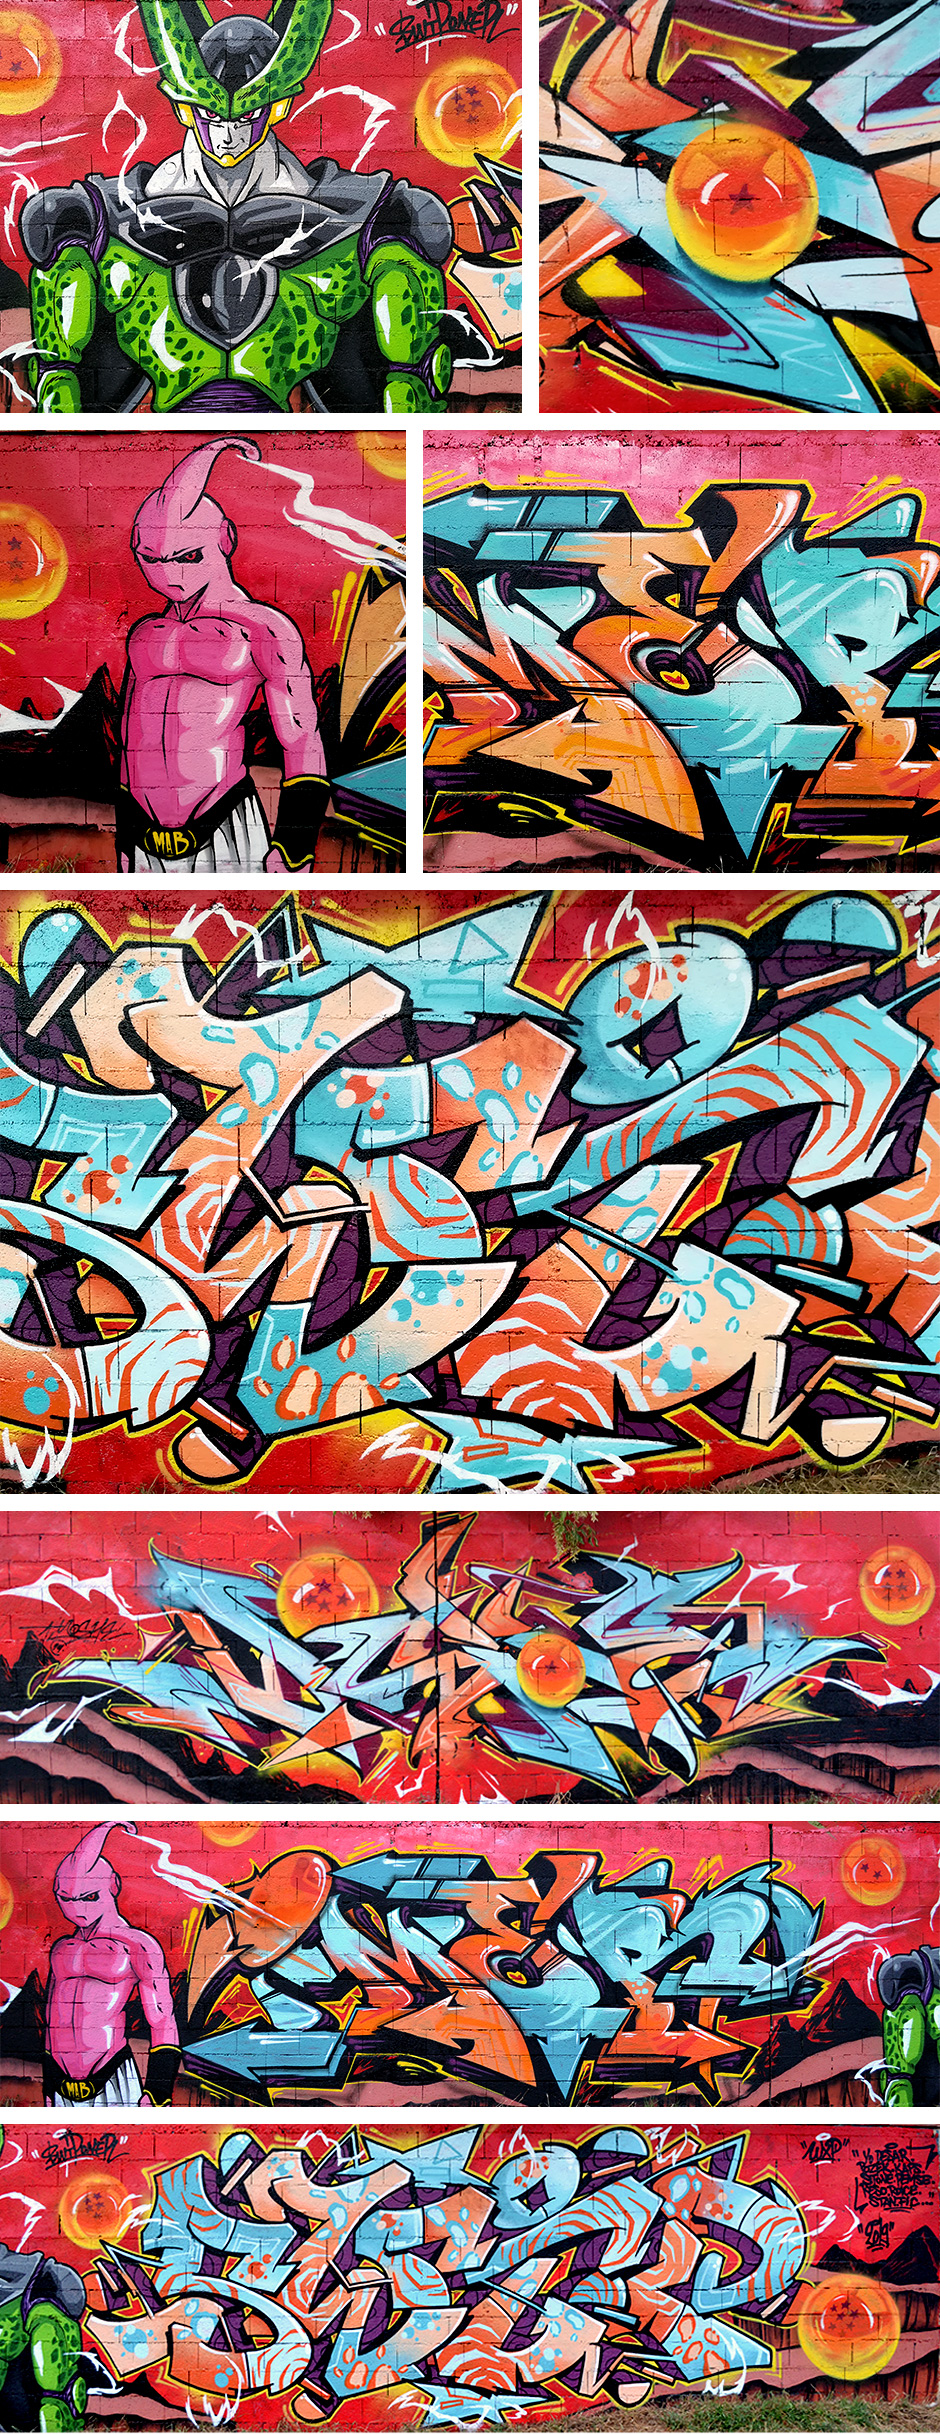 Fresque Graffiti Dragon ball z